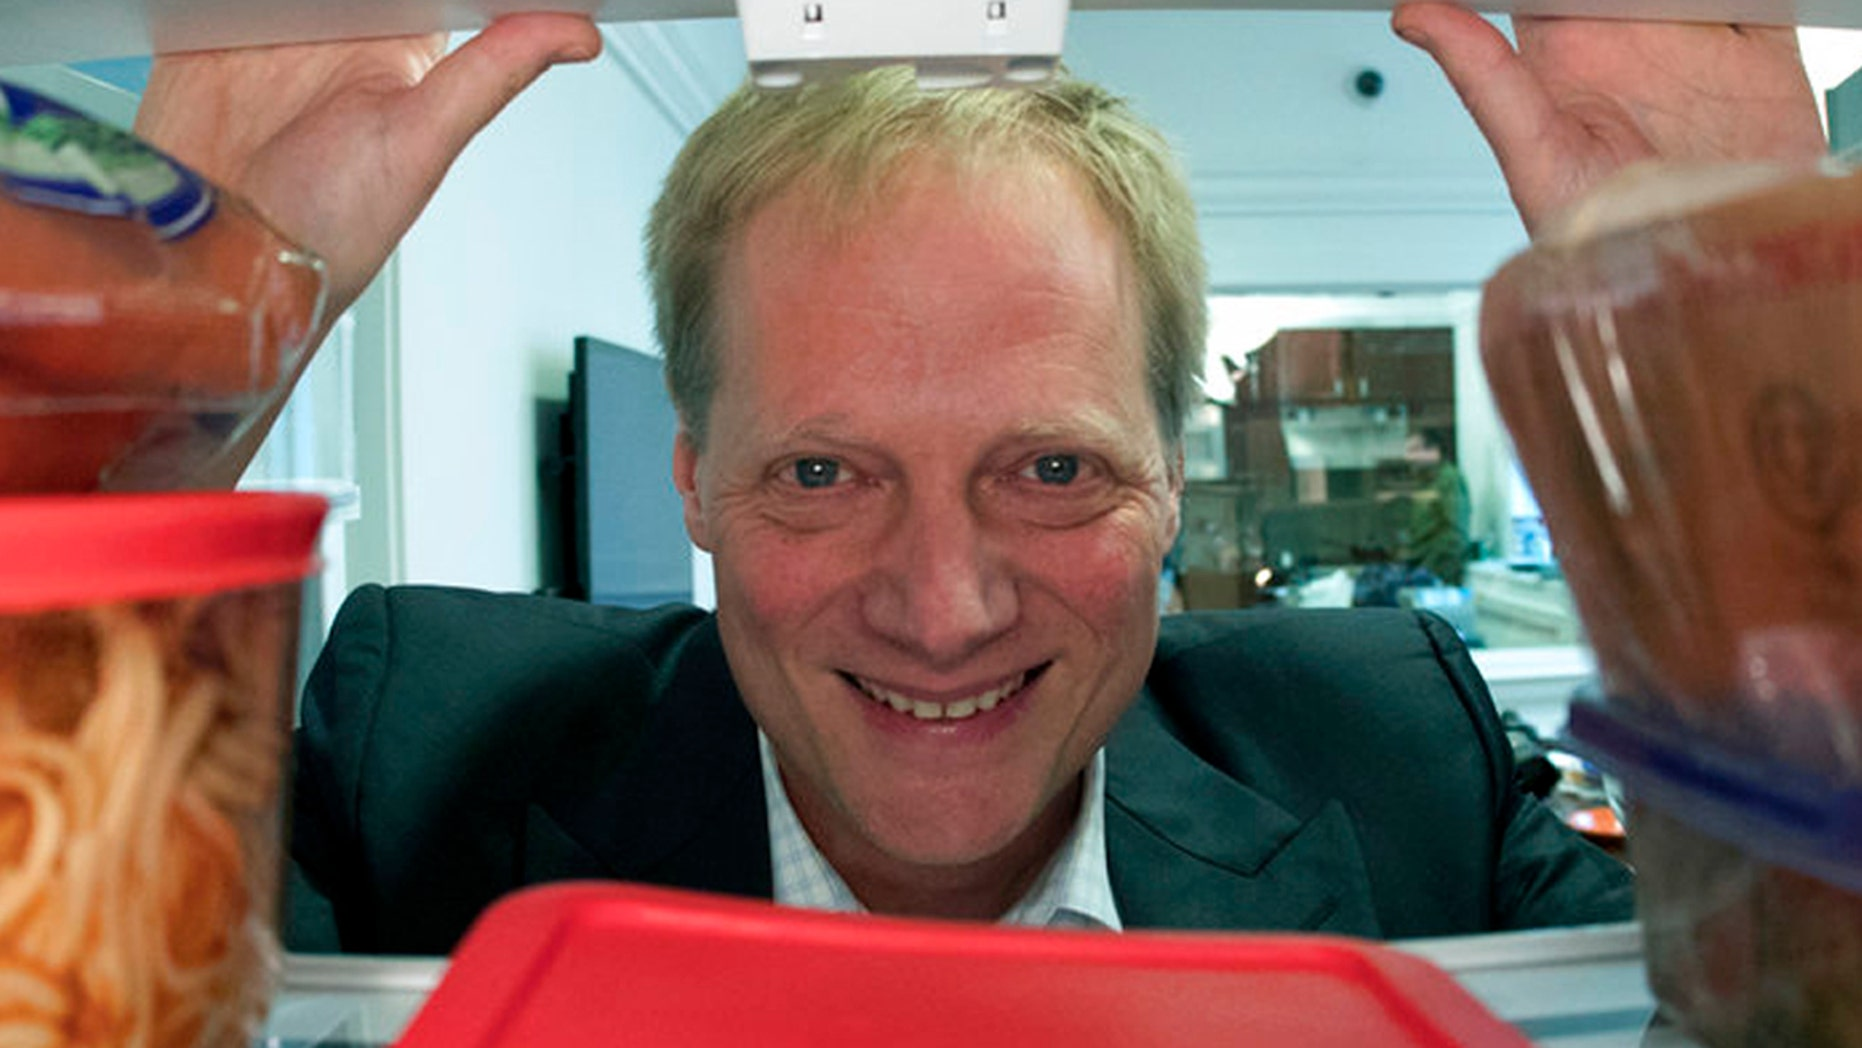 In this Dec. 6, 2016 file photo, Brian Wansink poses for a photo in a food lab at Cornell University in Ithaca, N.Y. On Friday, Sept. 21, 2018, the prominent food researcher is defending his work a day after Cornell University said he engaged in academic misconduct and was removed from all teaching and research positions.